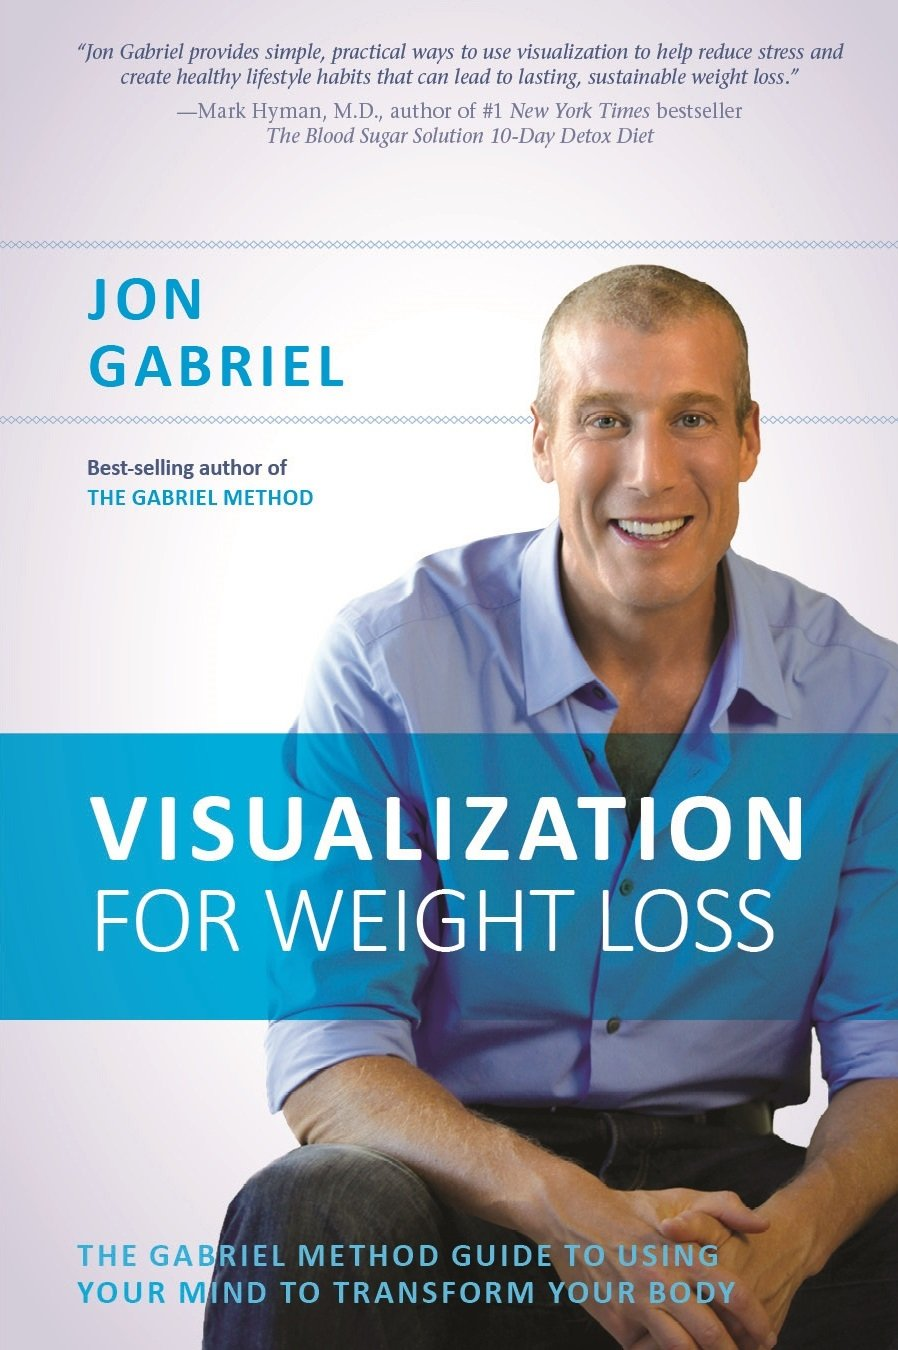 Visualization for weight loss the gabriel method guide to using visualization for weight loss the gabriel method guide to using your mind to transform your body jon gabriel 9781401945985 amazon books fandeluxe Gallery